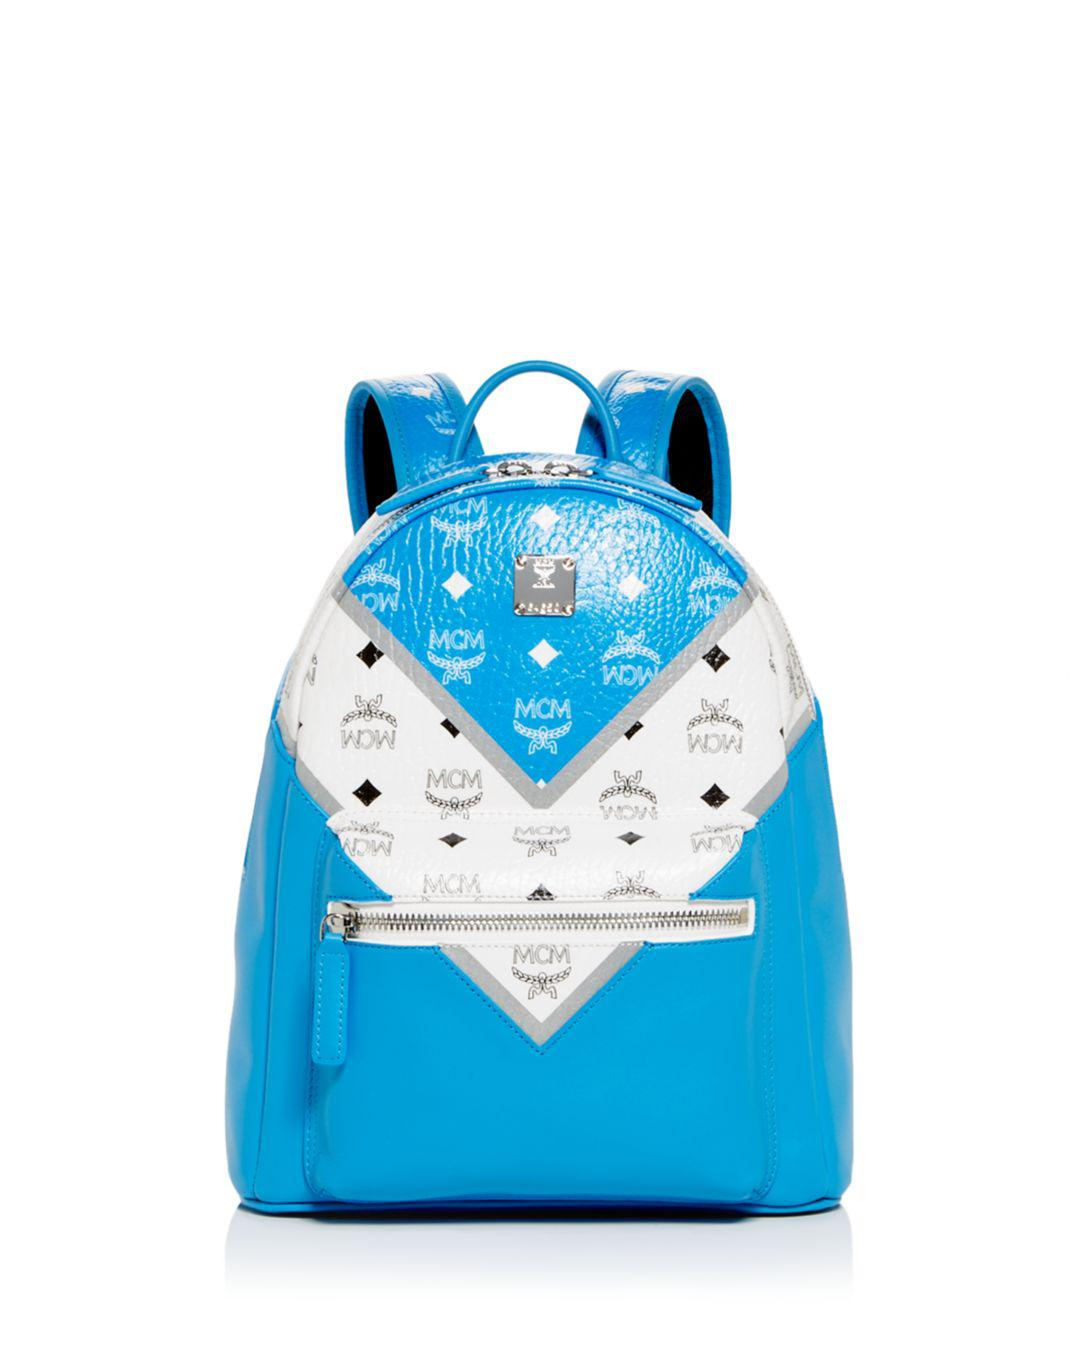 236067c4f1 Lyst - MCM Stark Medium Move Color-block Backpack in Blue